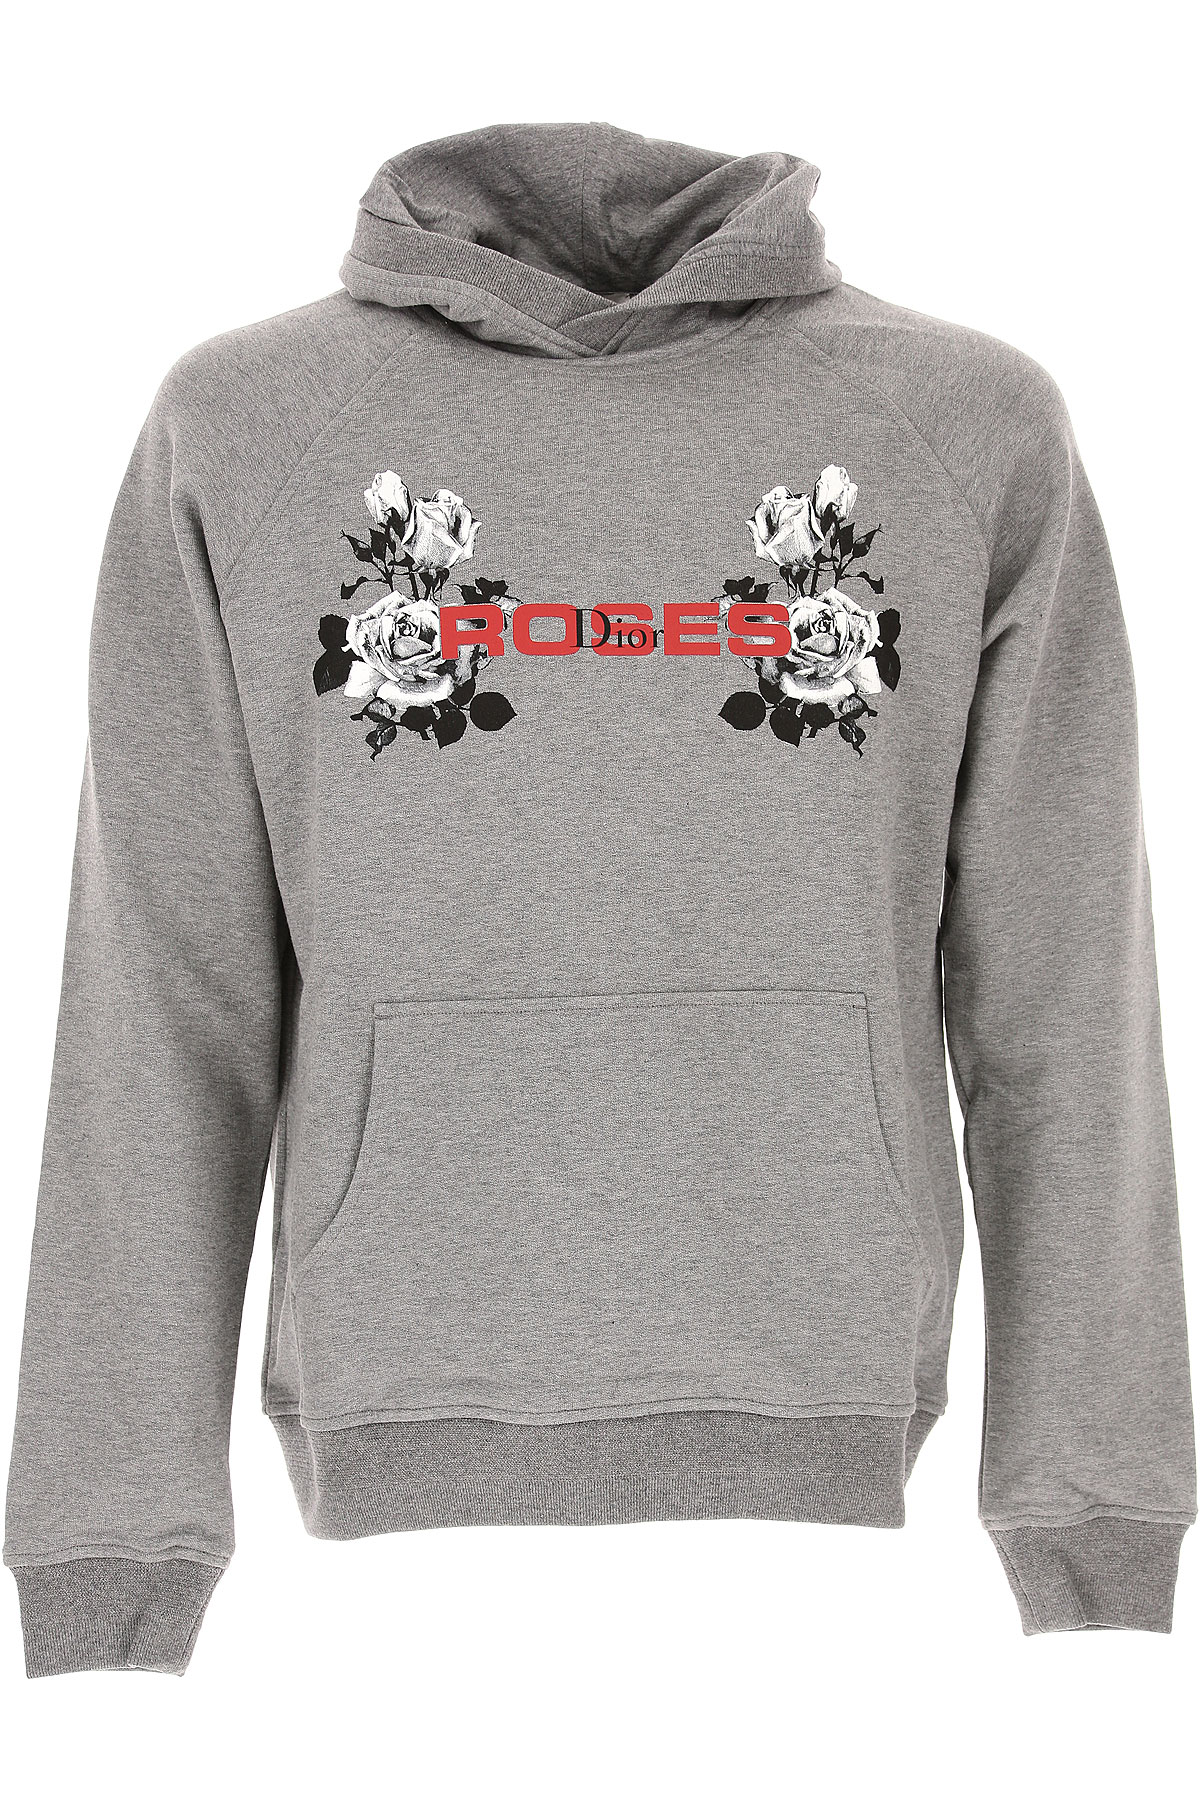 Christian Dior Sweatshirt for Men On Sale, Medium Grey, Cotton, 2017, L M S XL USA-458965